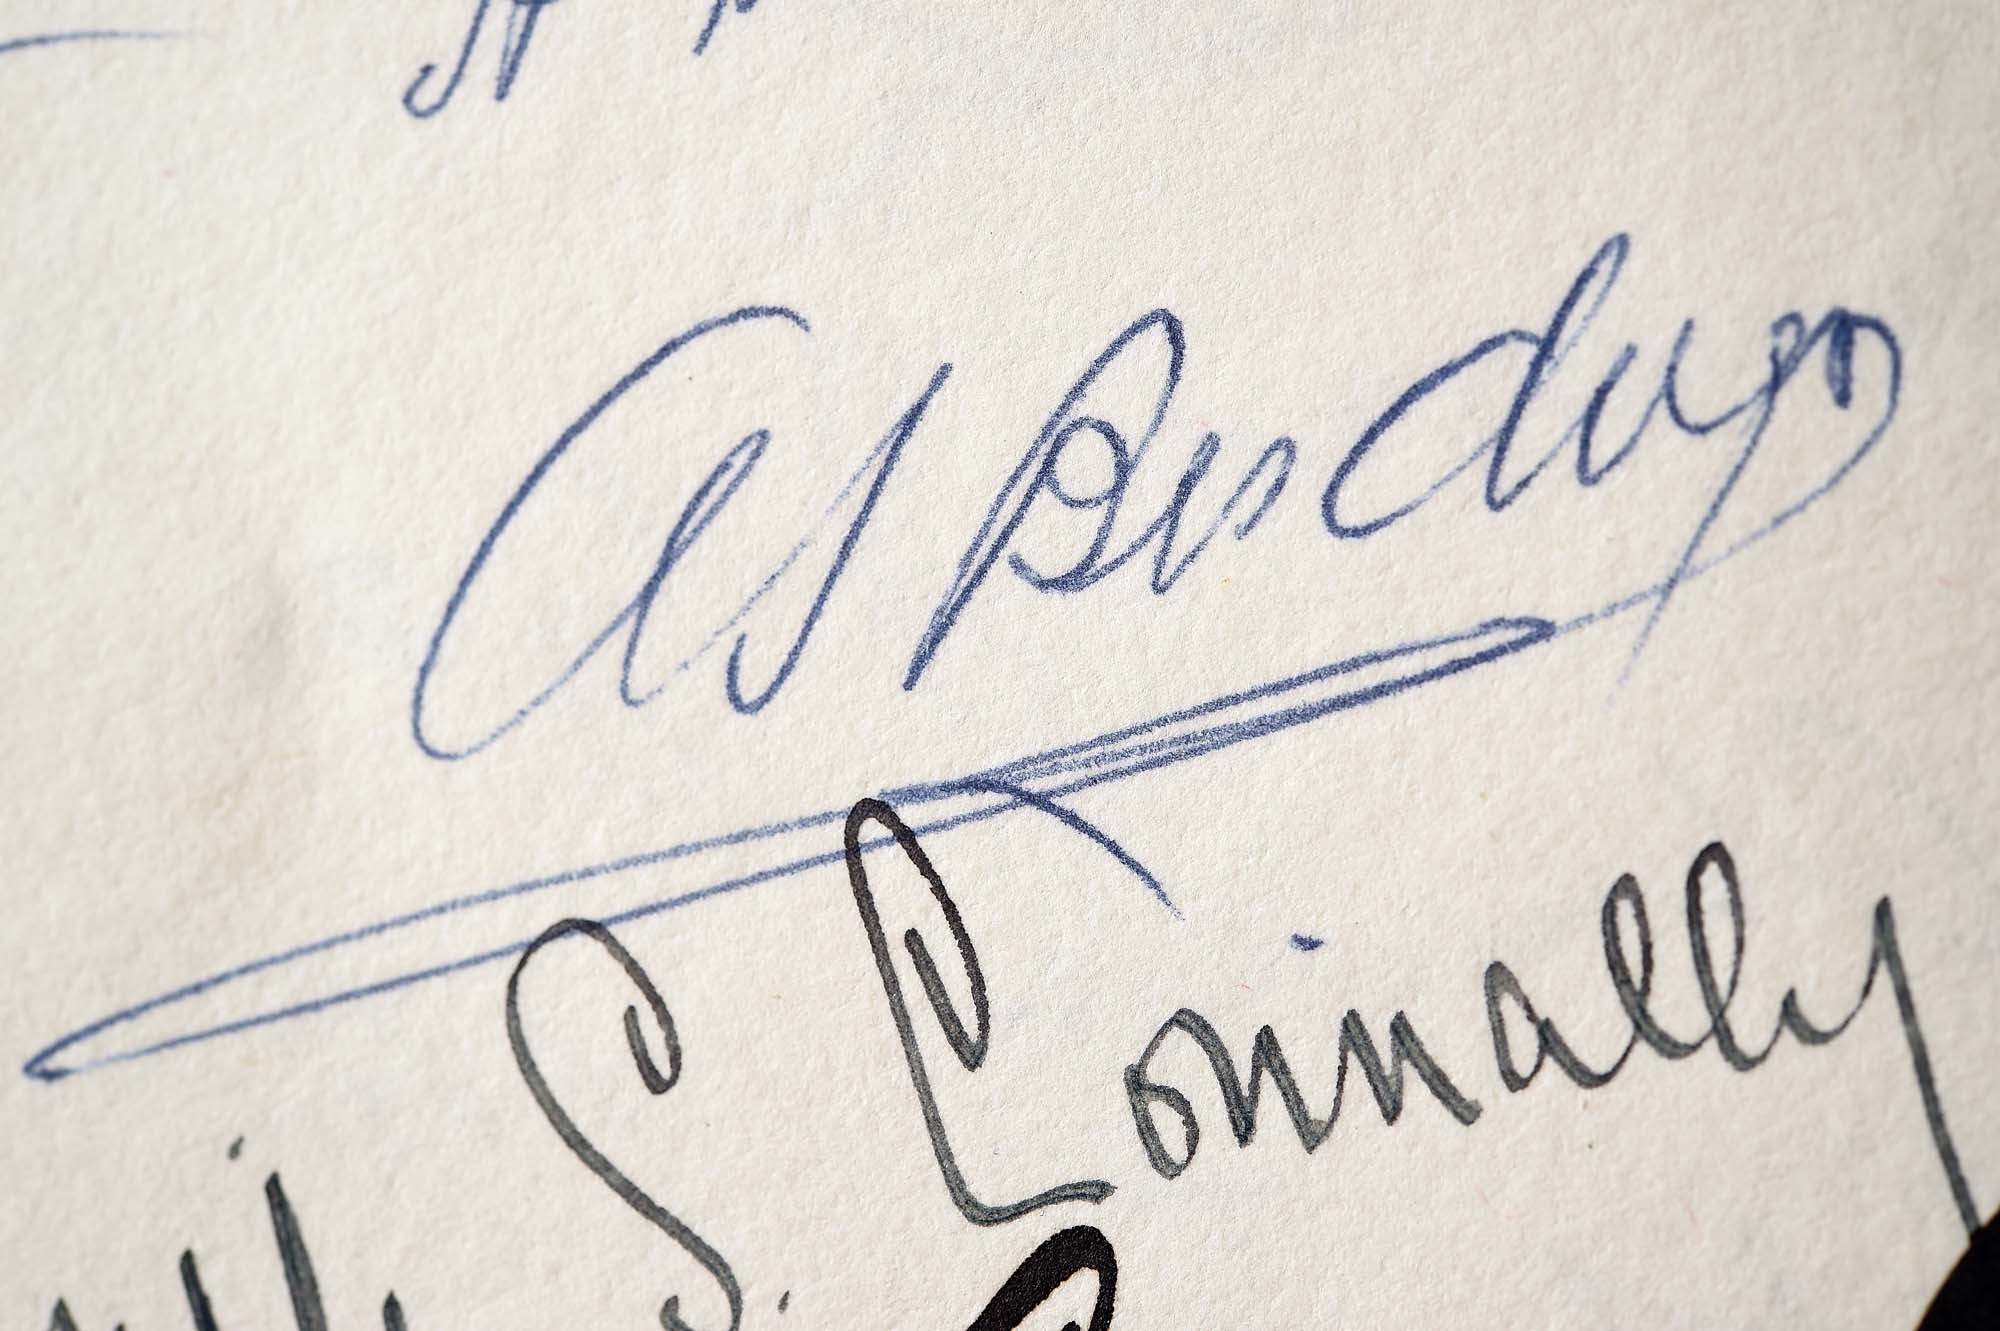 a photo of a page full of signatures